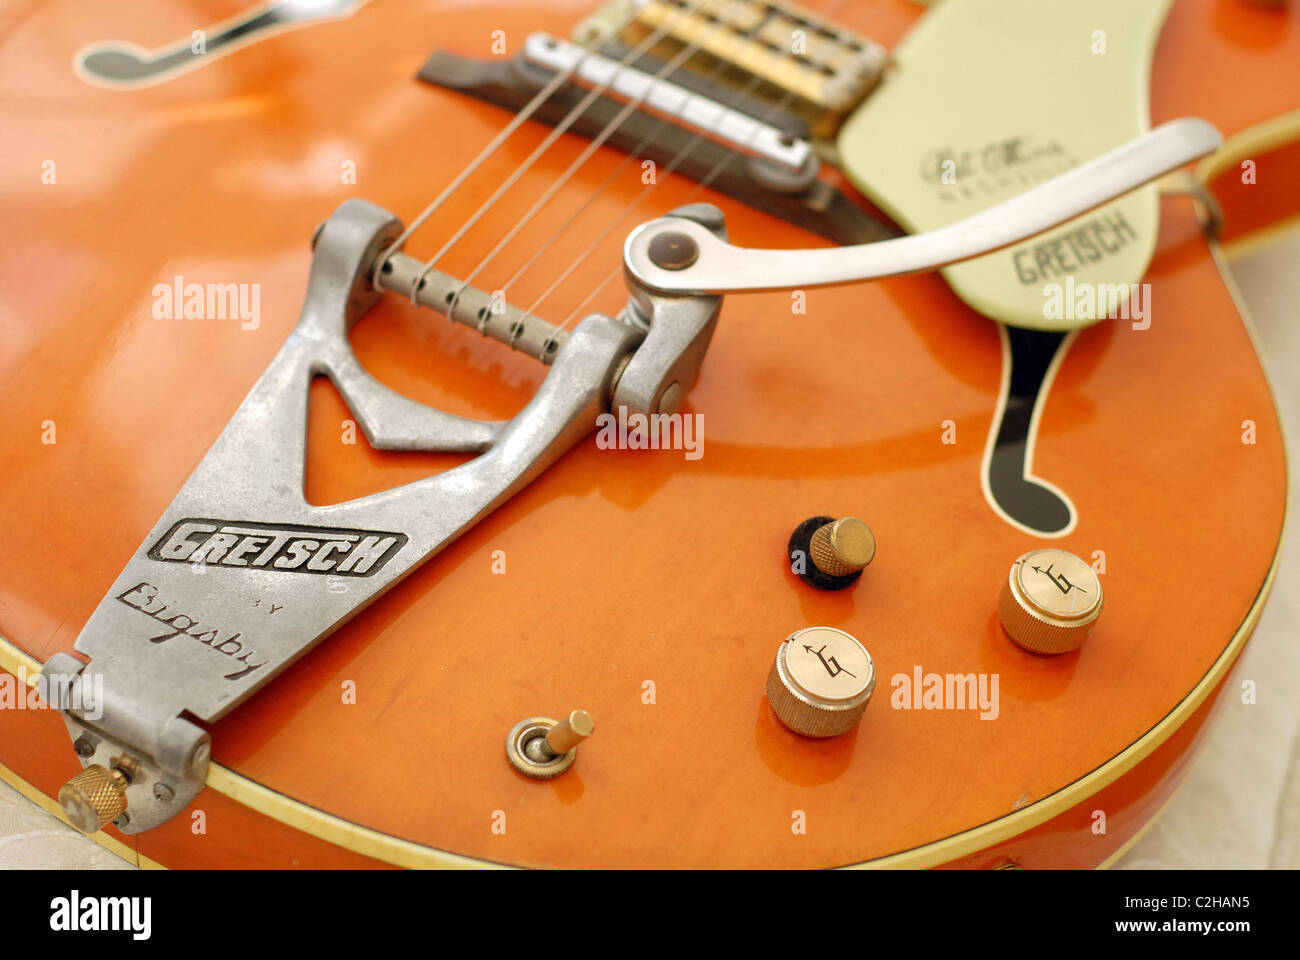 Vintage 1968 Gretsch Chet Atkins Nashville 6120 electric guitar with Bigsby vibrato. - Stock Image